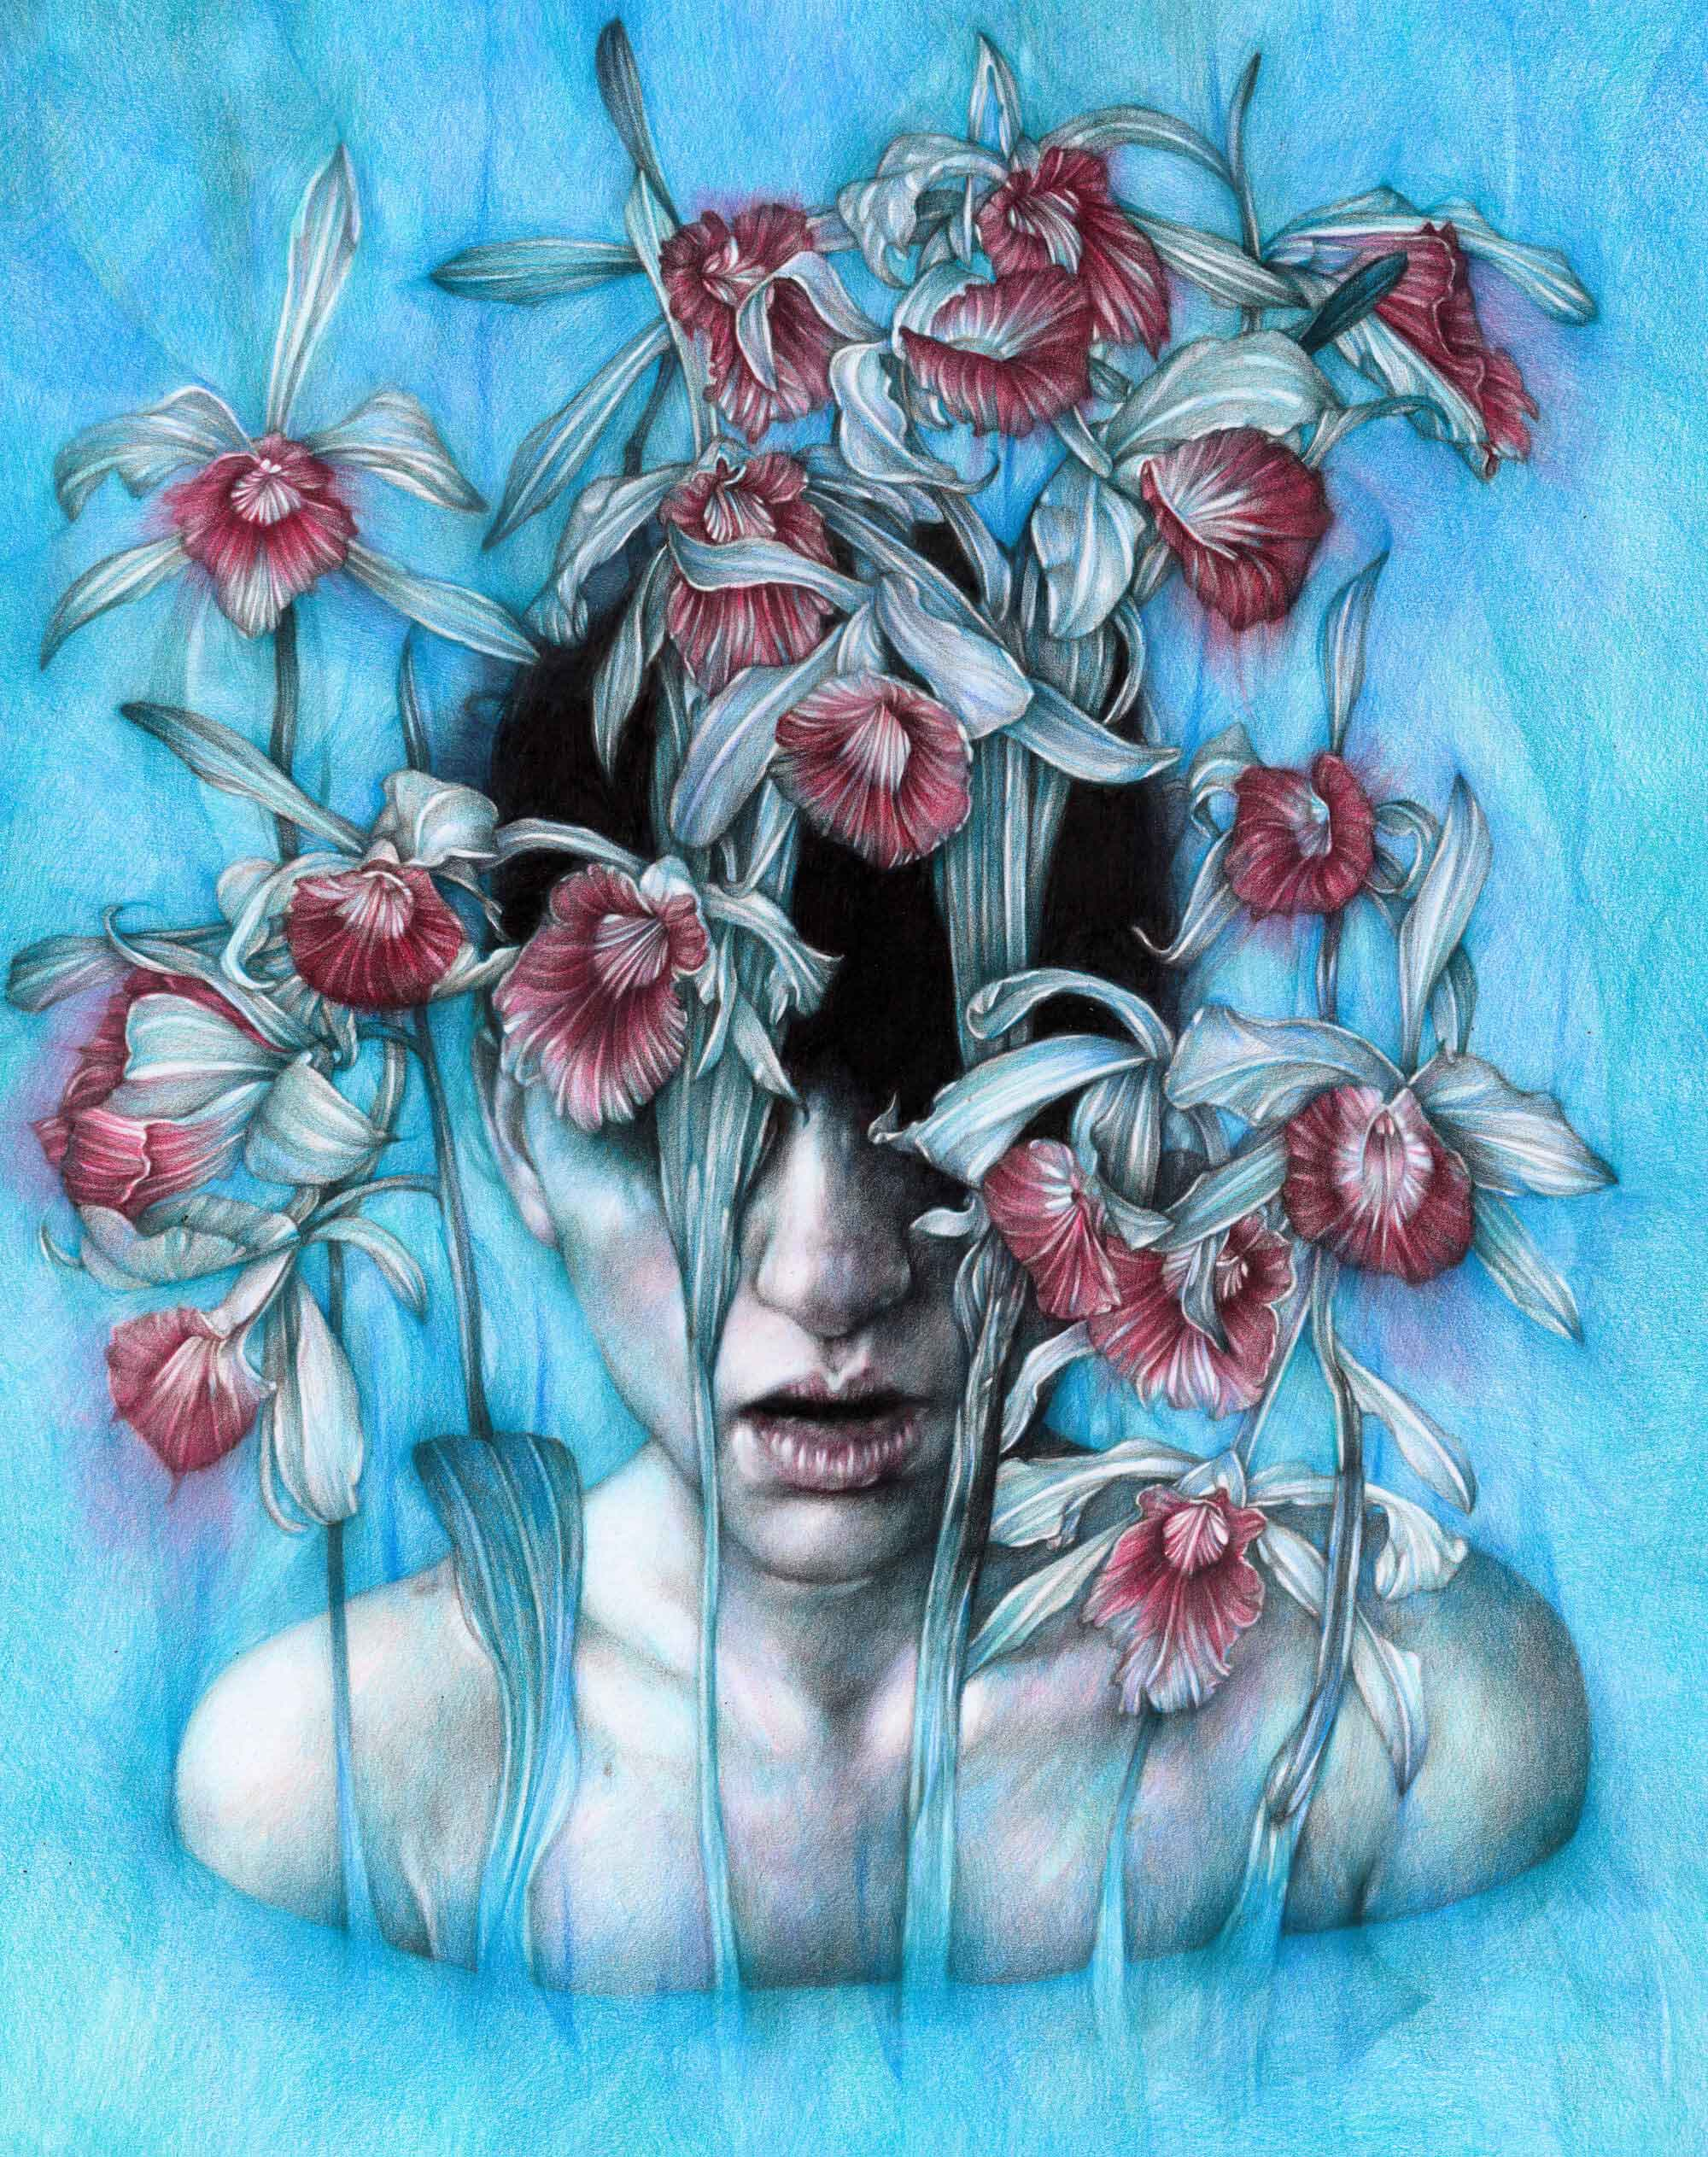 All We Cannot See: An Interview with Marco Mazzoni